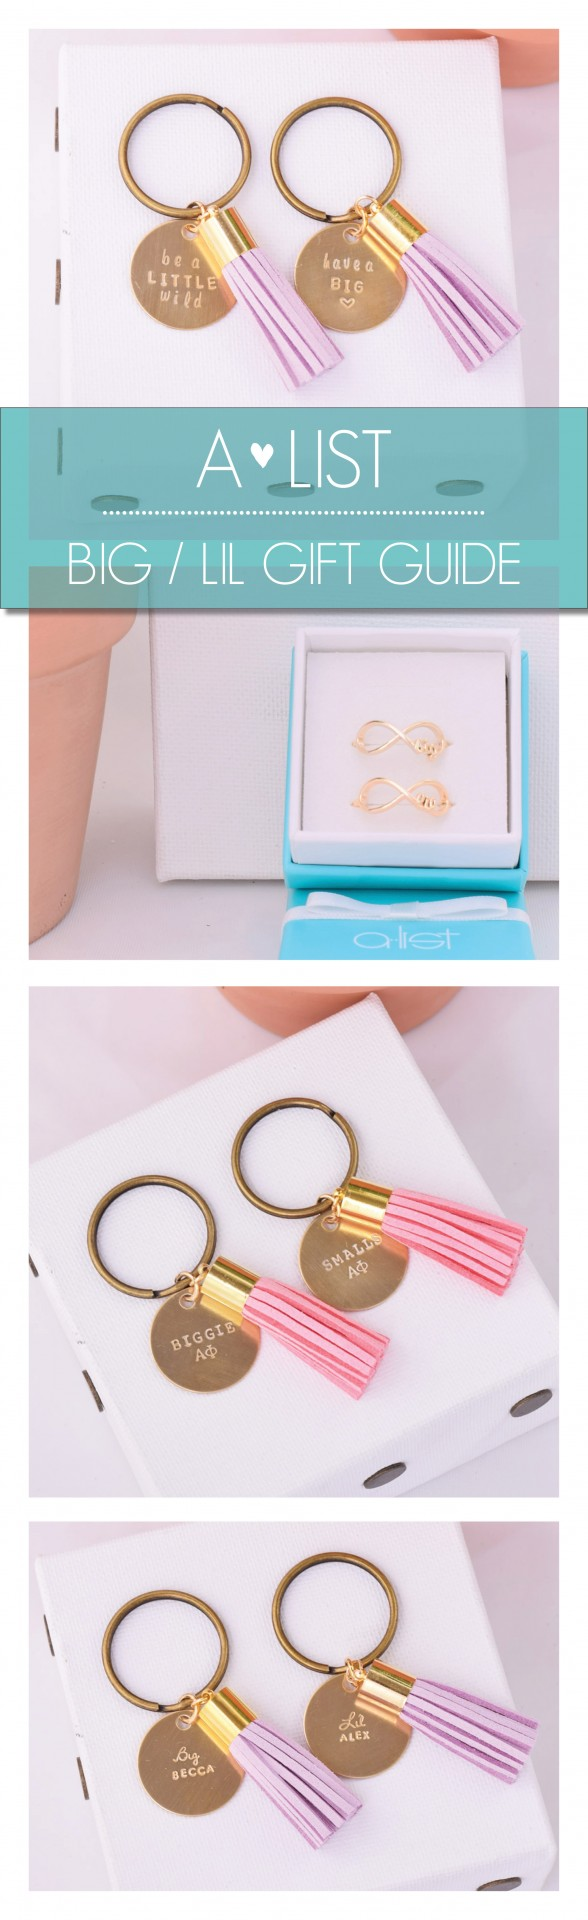 big-lil-gift-guide-long-pin-new